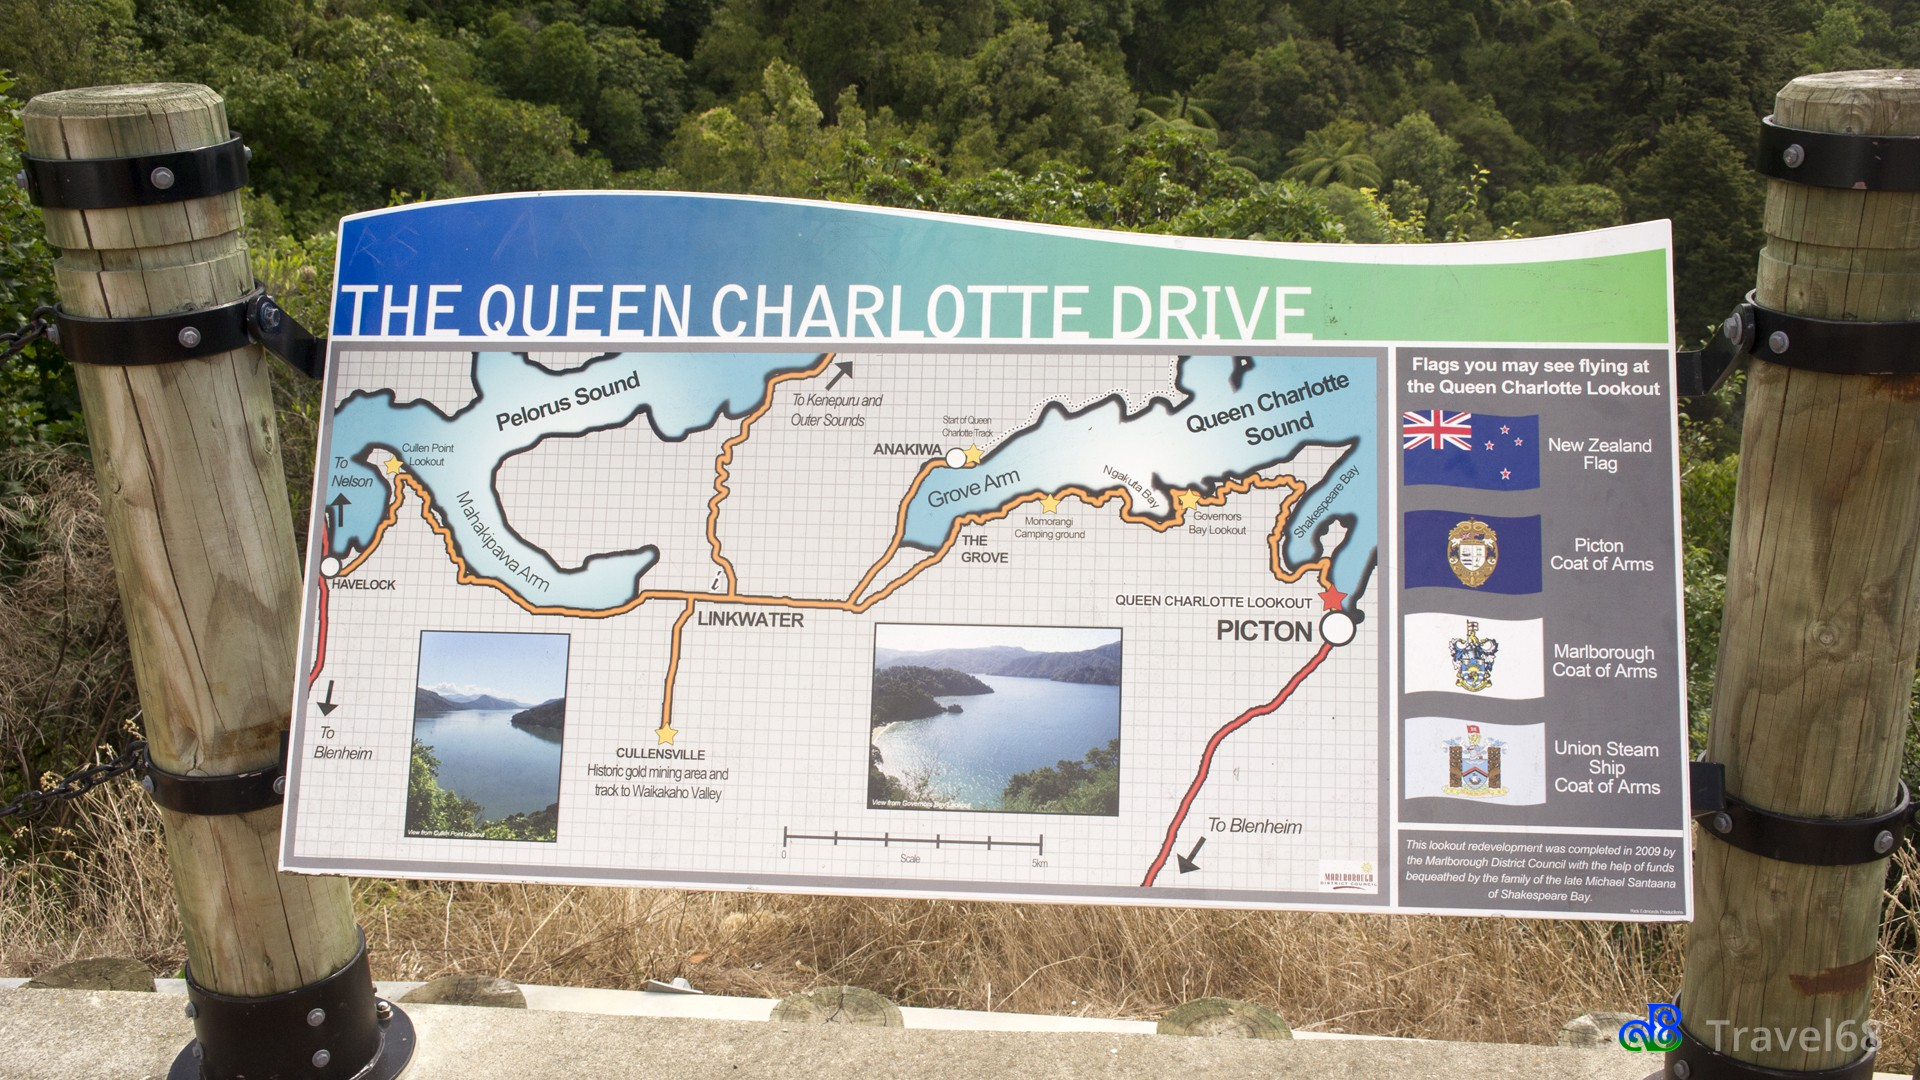 Vanuit Picton namen we de mooie Queen Charlotte drive richting Havelock